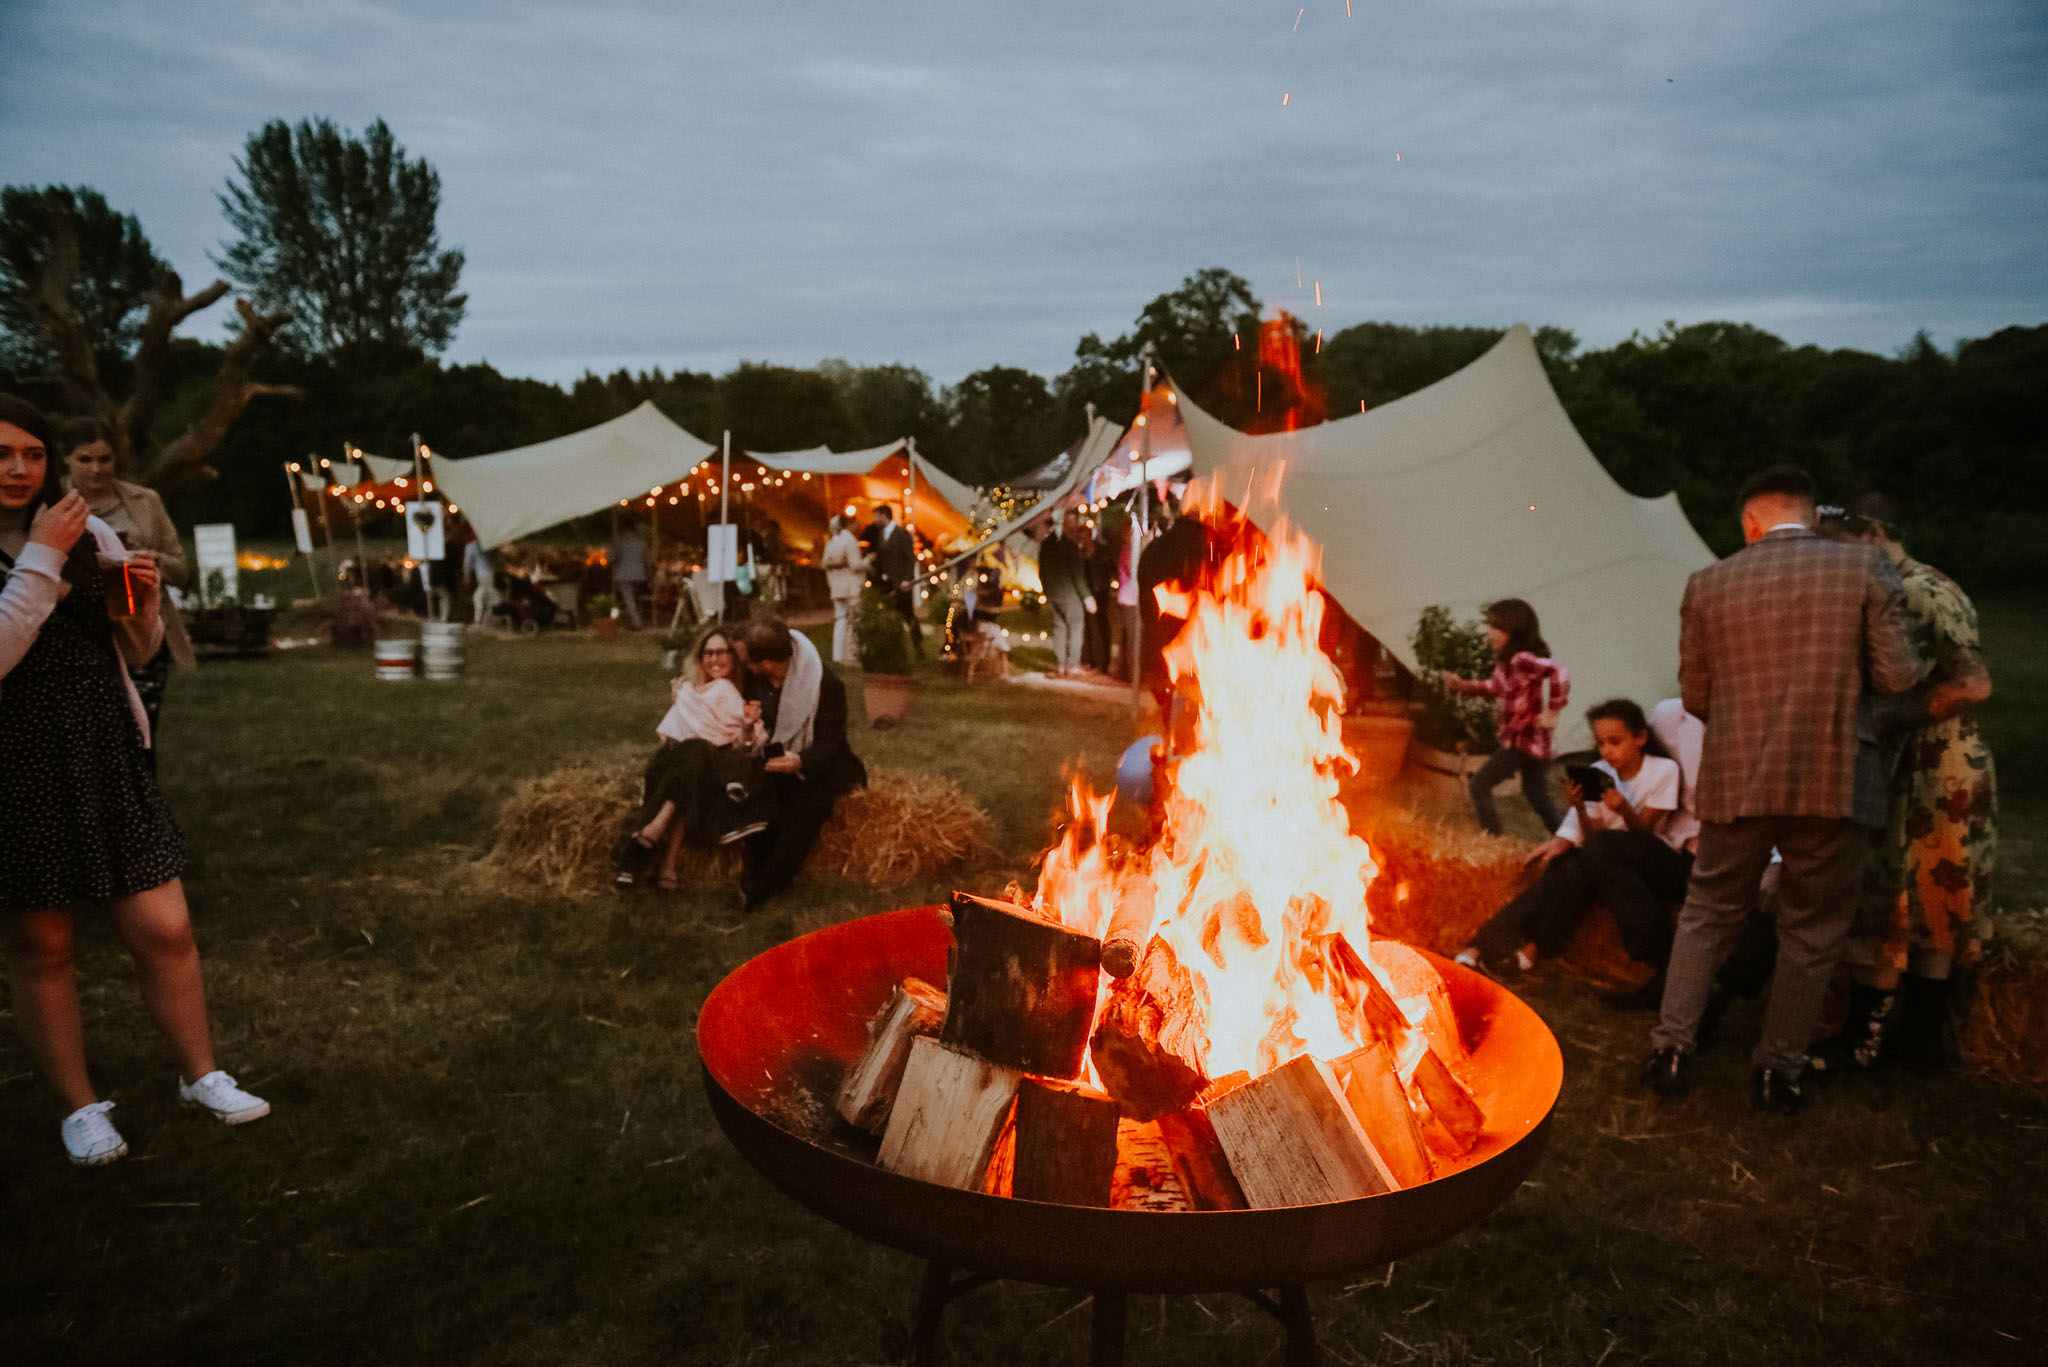 stretch tents behind group around a firepit